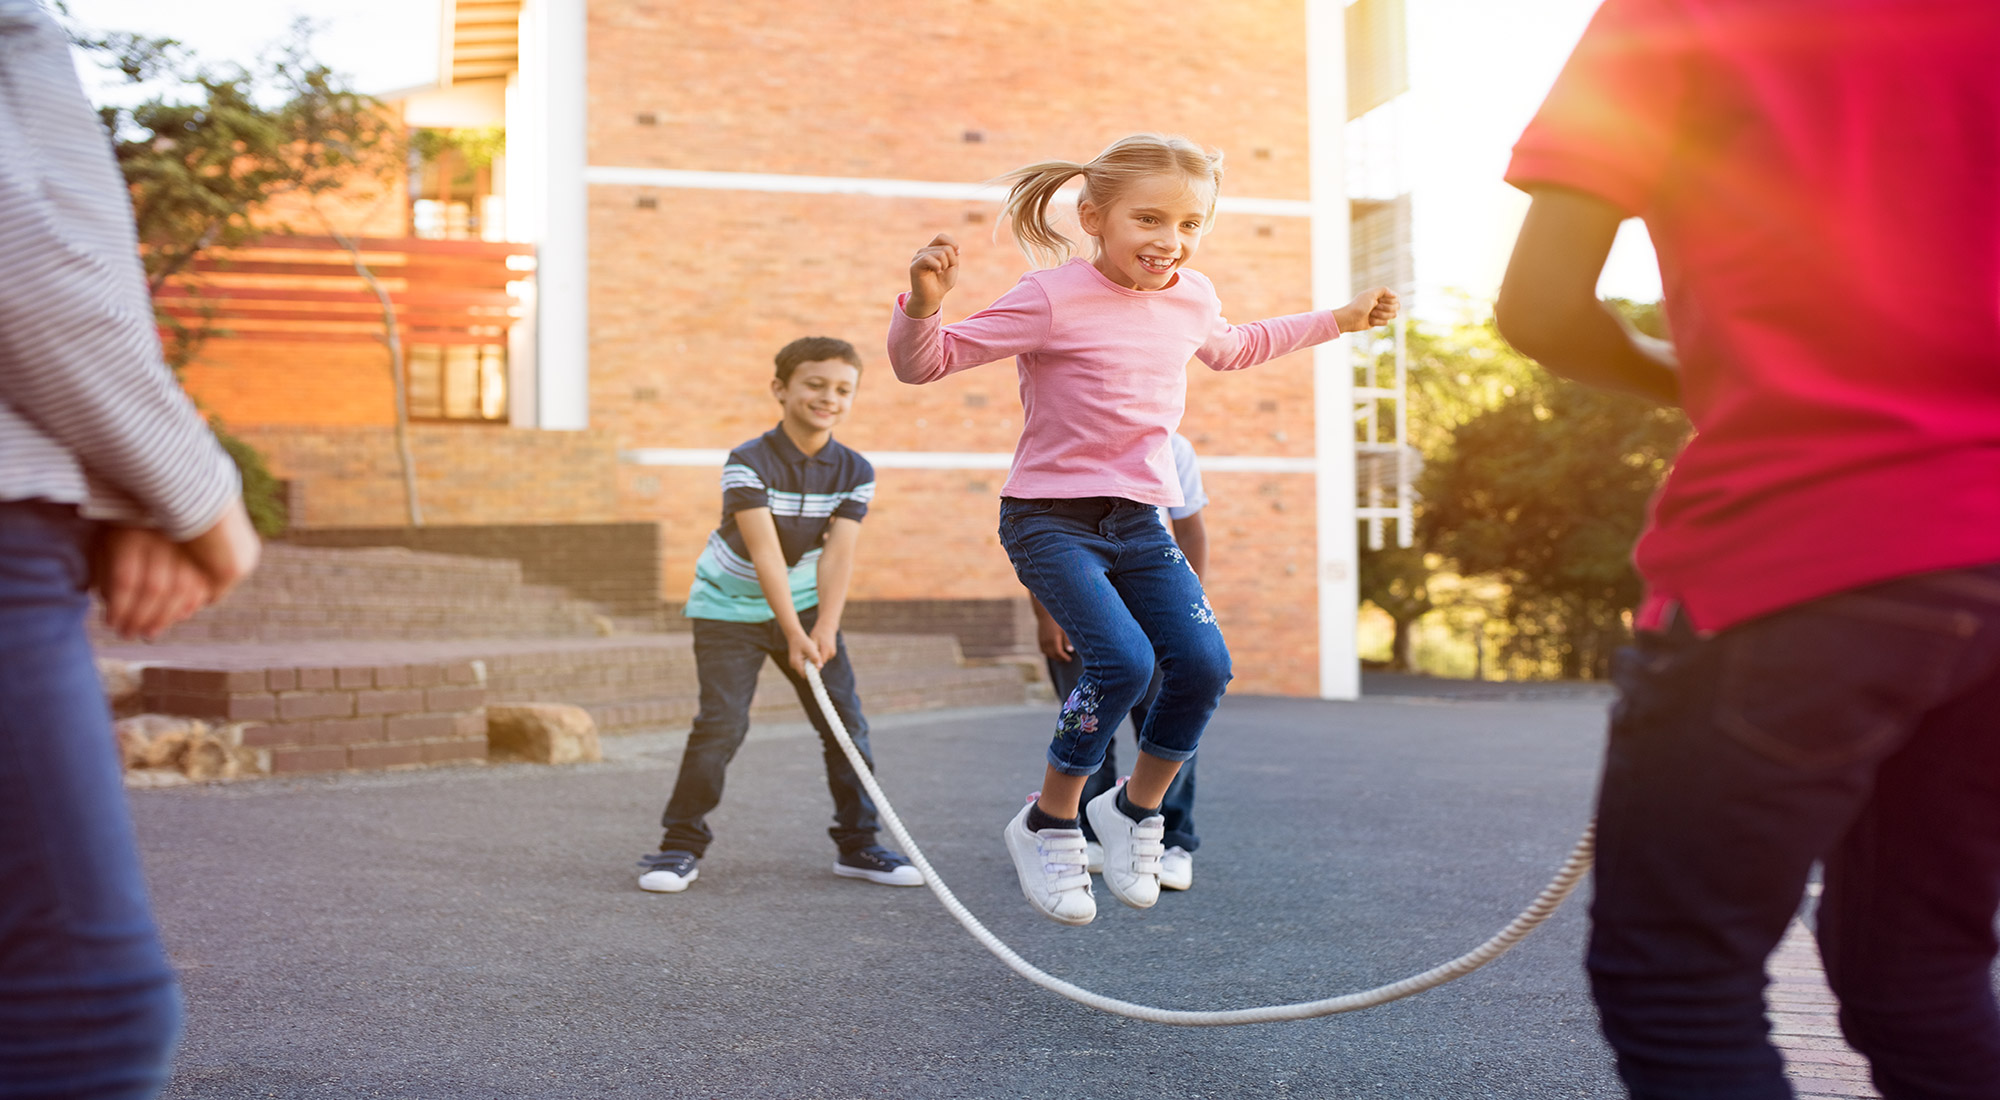 ukactive calls for government to stop disadvantaged children being 'left behind' by summer holiday lockout